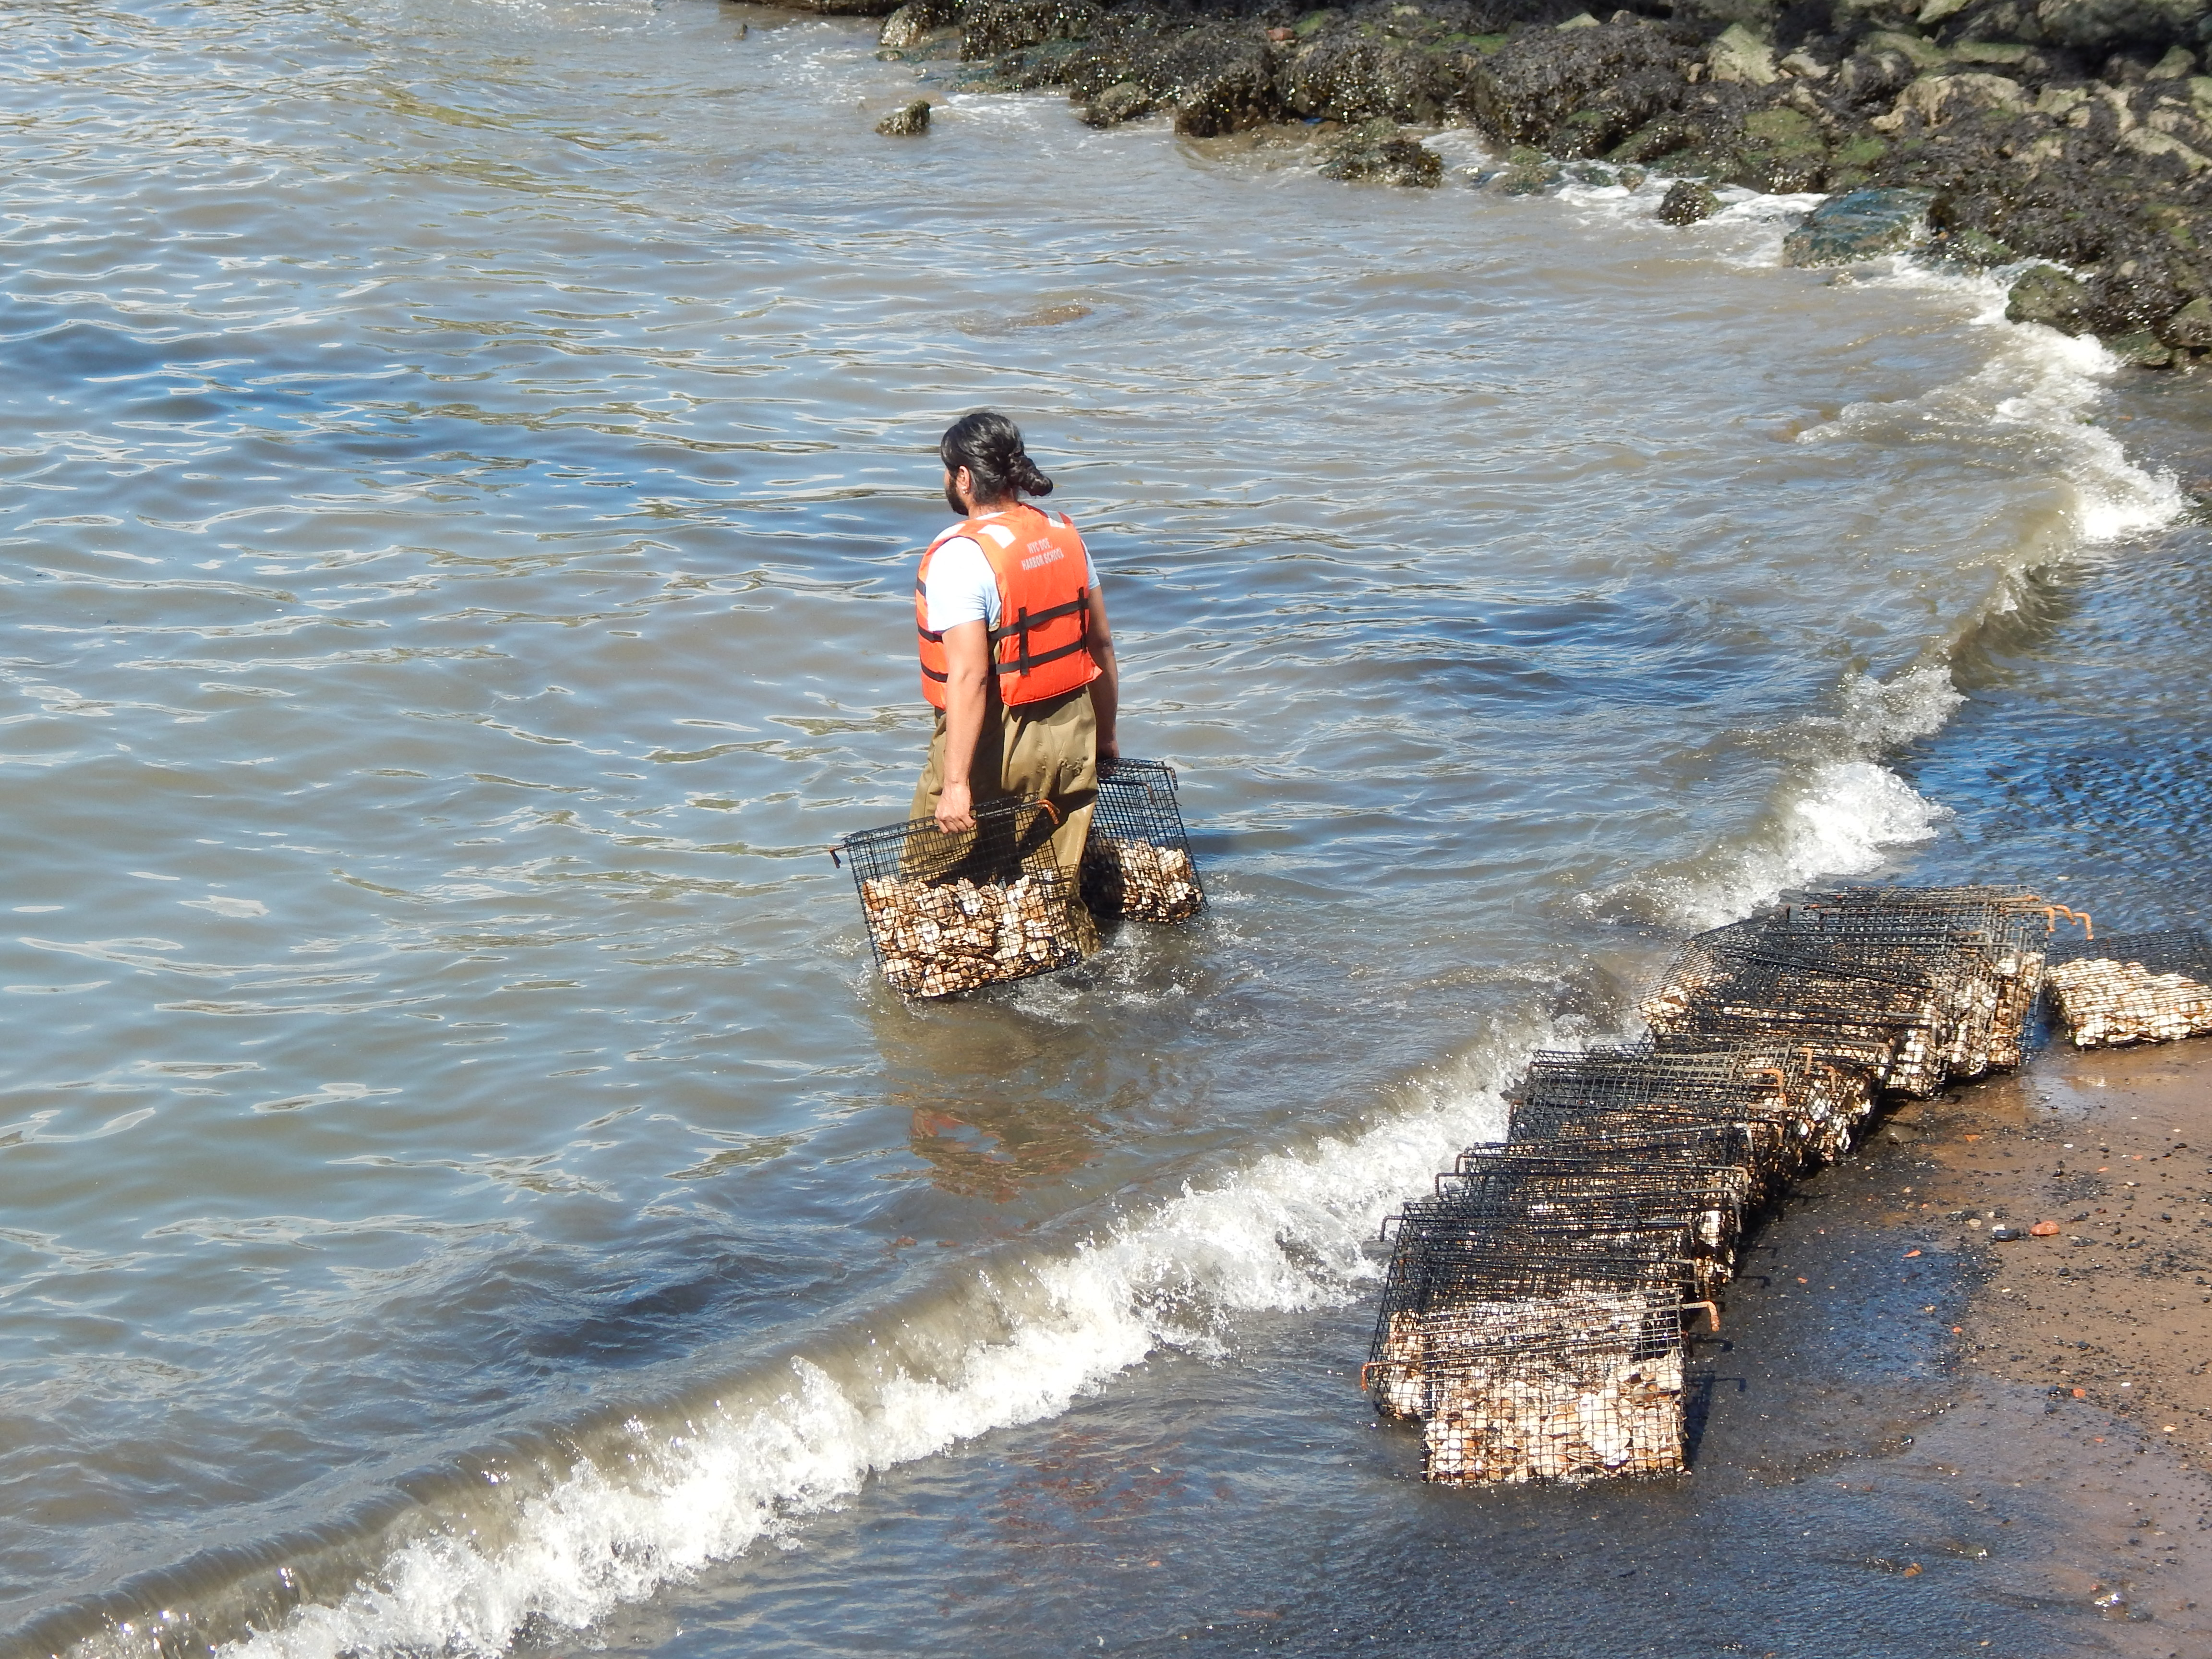 Person walking into water with oyster cages.